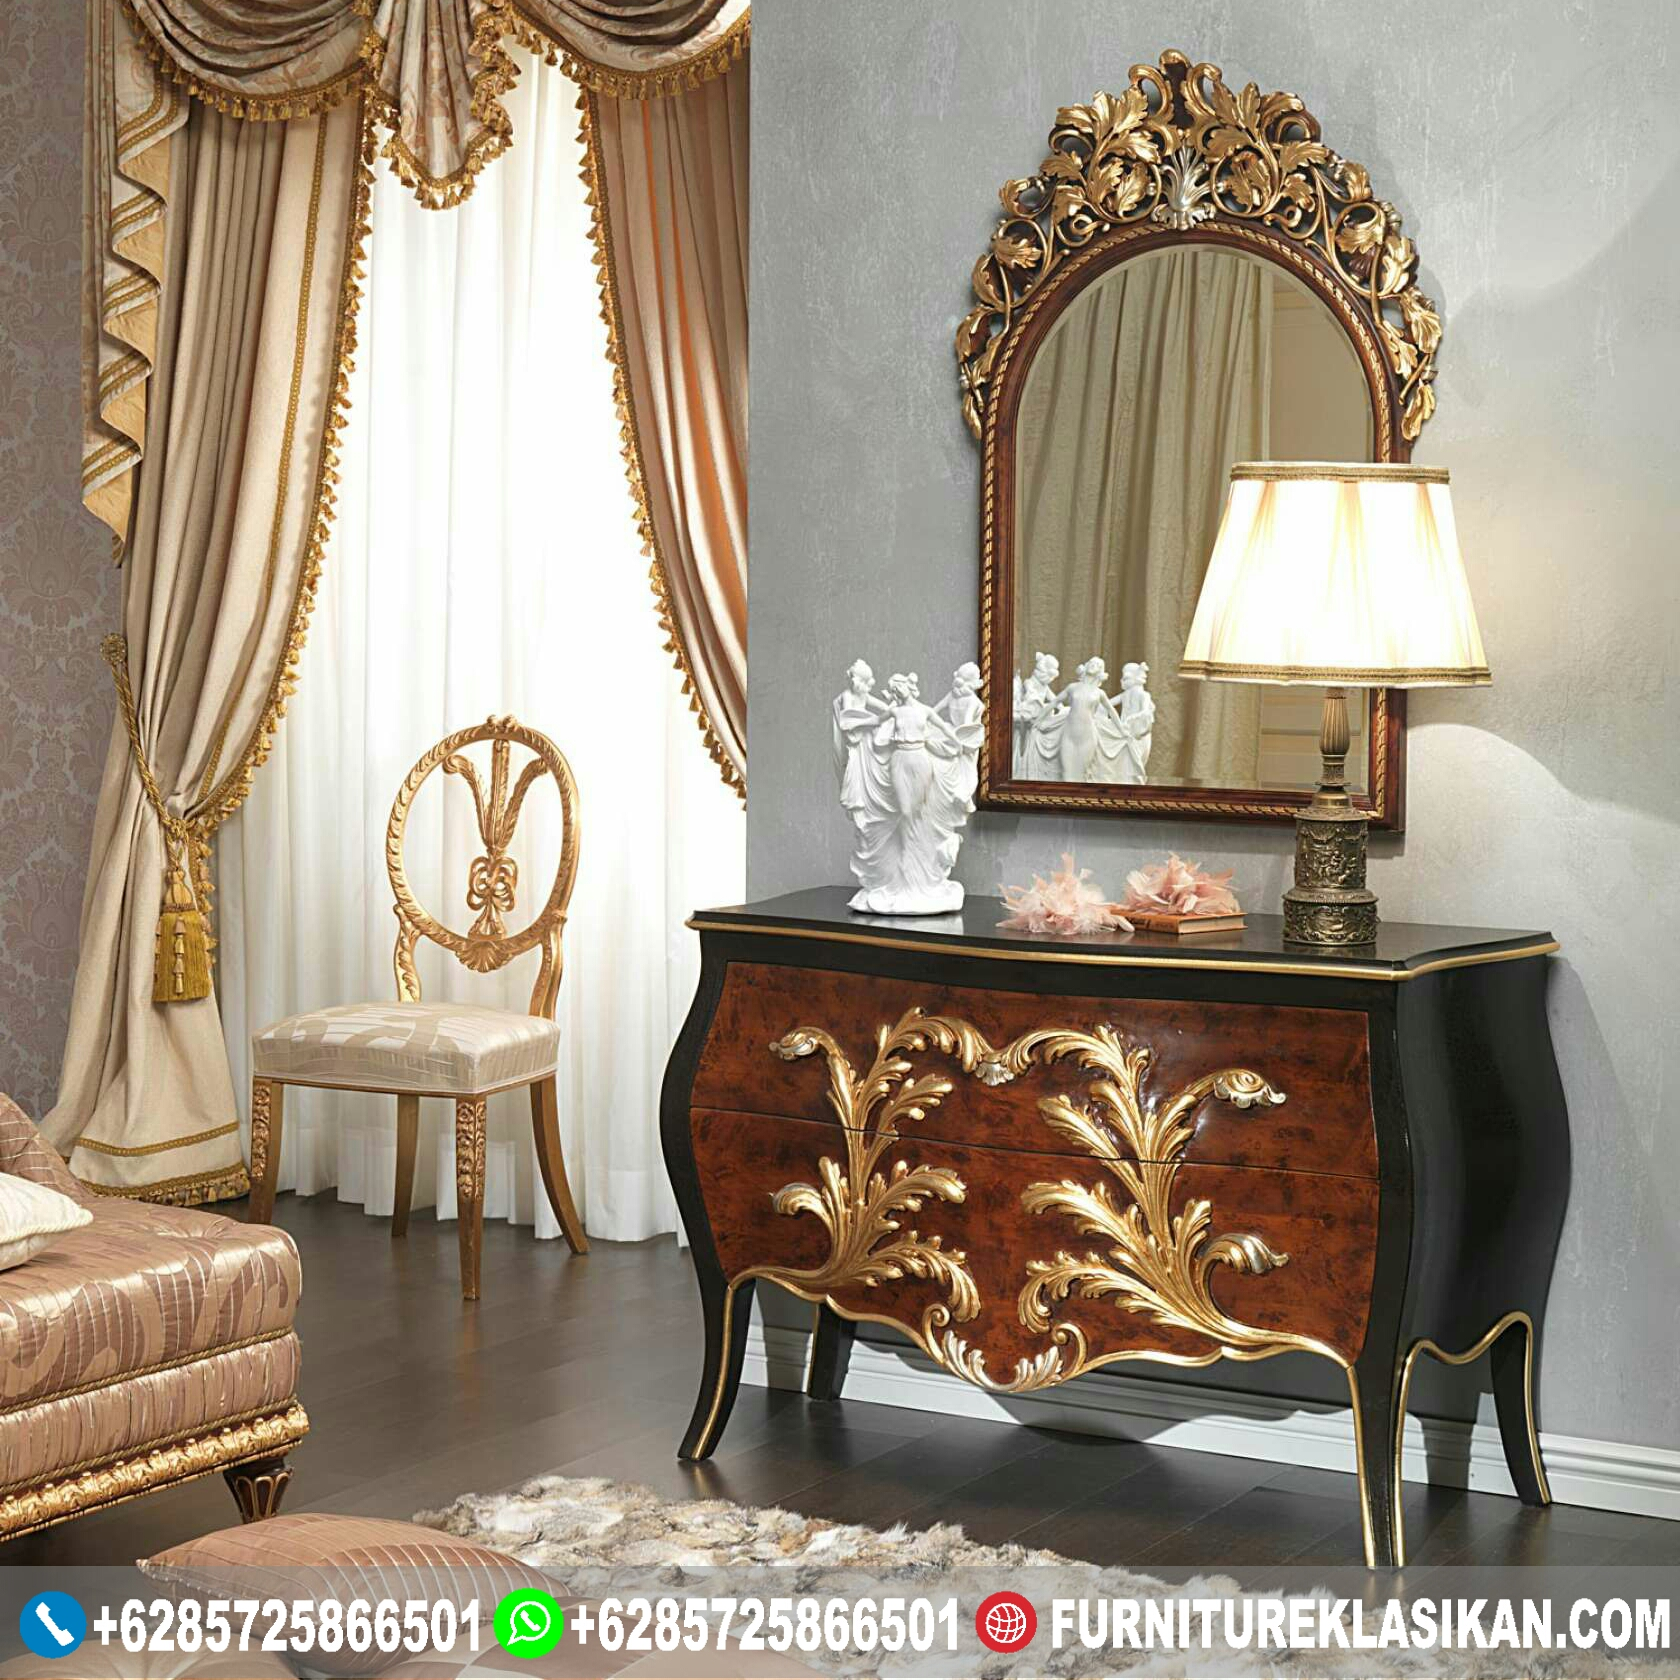 https://furnitureklasikan.com/wp-content/uploads/2018/03/Desain-Meja-Rias-Jati-Ukir.jpg